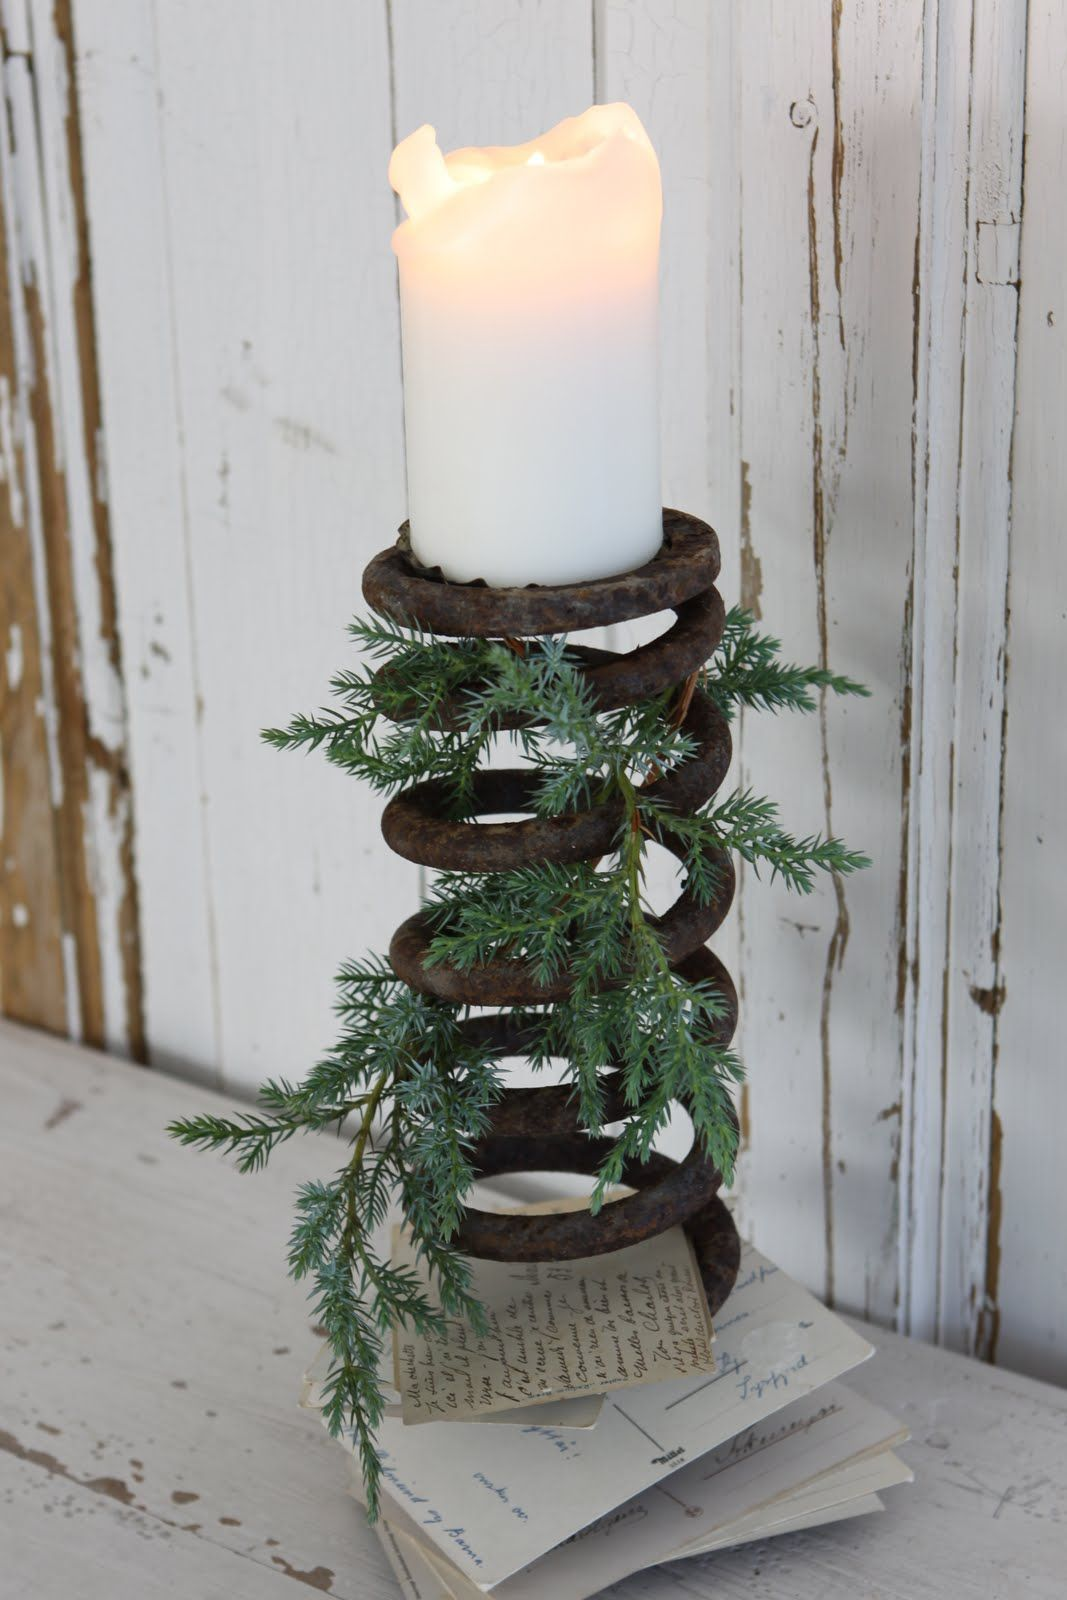 Top Fun And Unique DIY Decorations For Christmas Christmas - Cool diy spring candles and candleholders